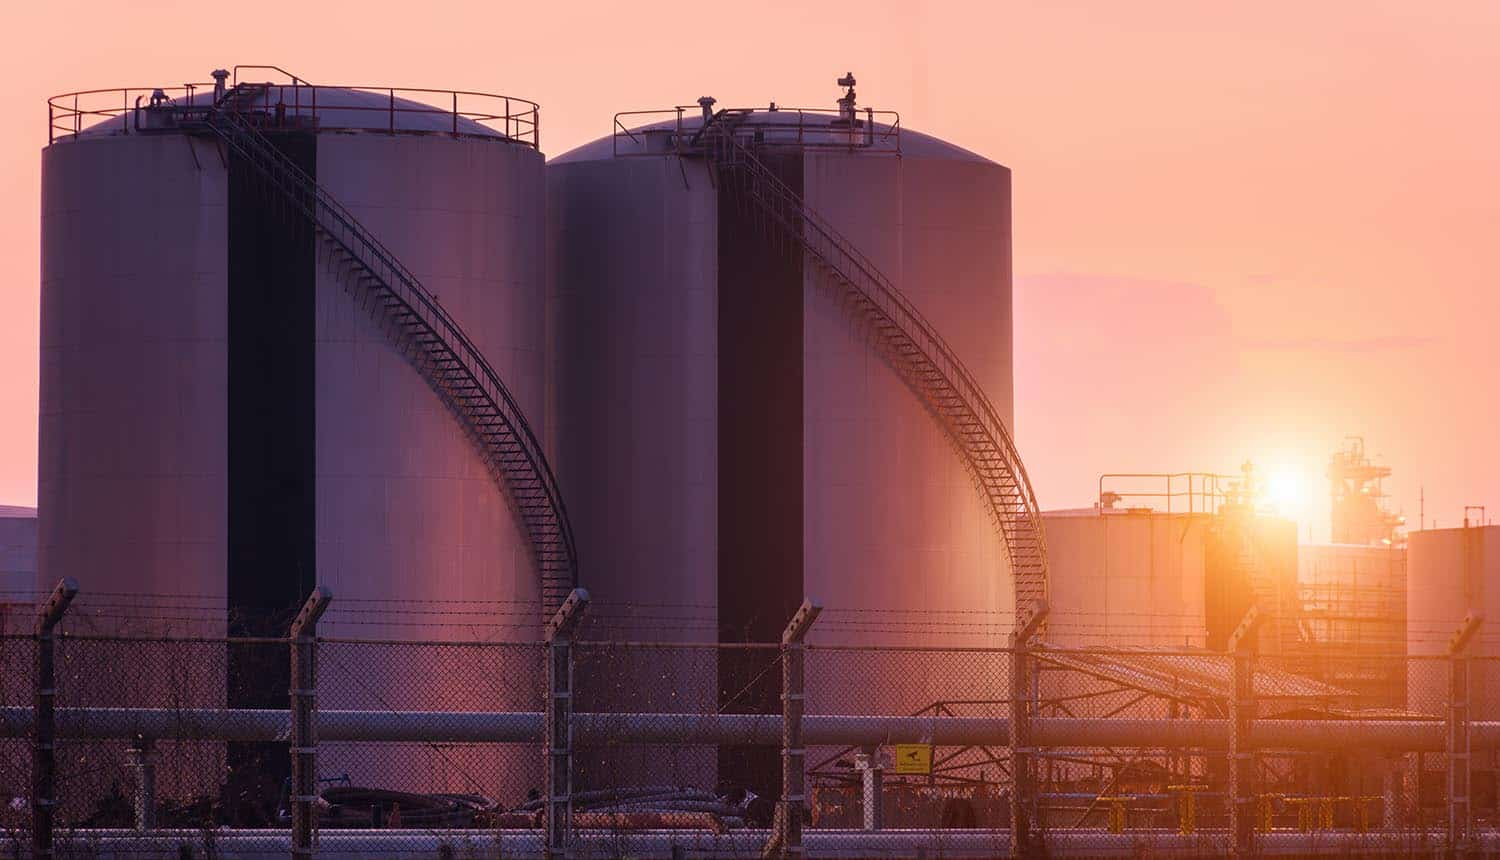 Picture of oil refinery plant showing the data wiper malware attack on Bahrain's National Oil Company linking to Iran